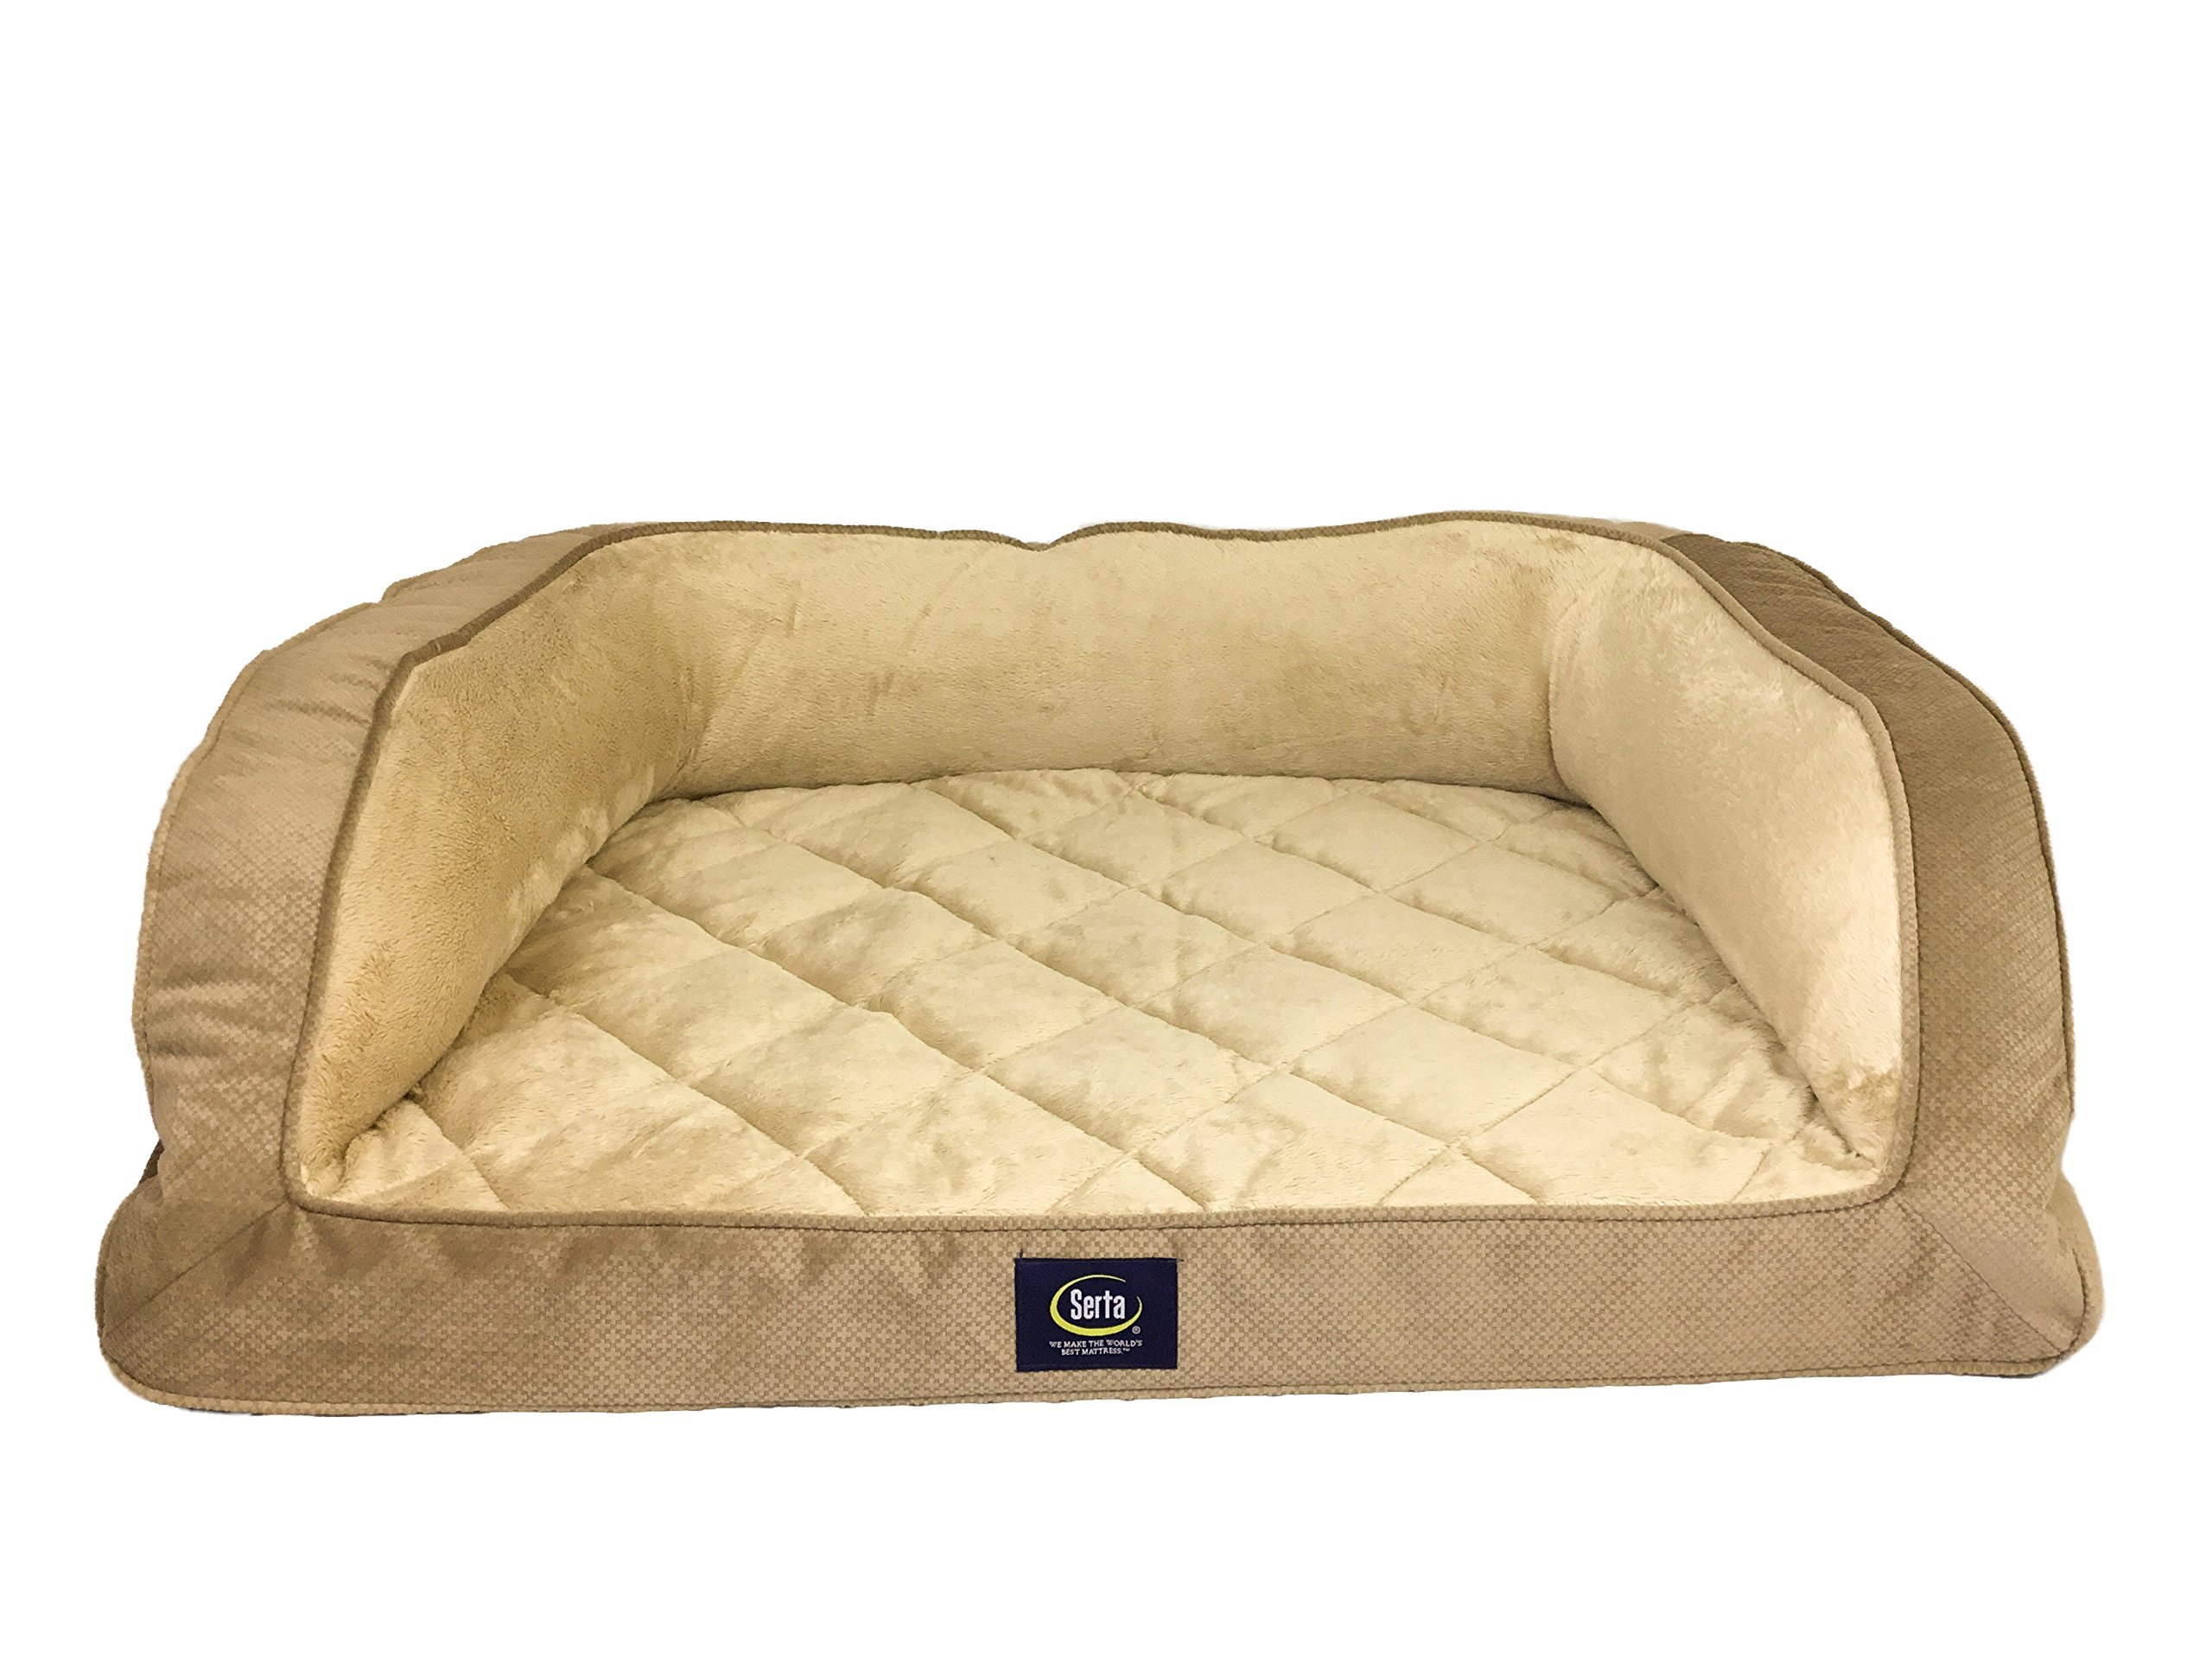 Serta Ortho Quilted Couch Pet Bed, Large, Tan